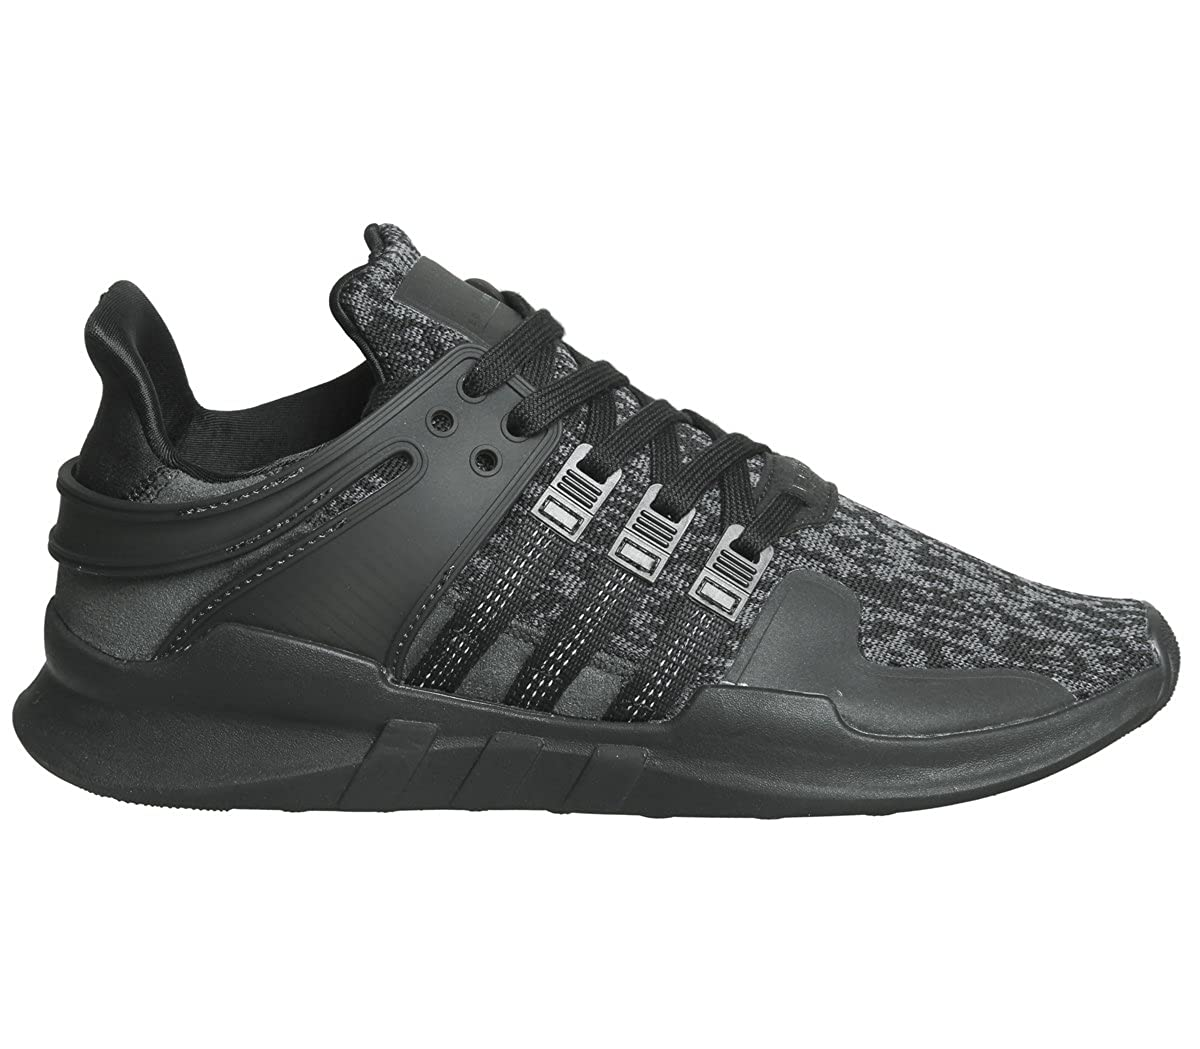 competitive price cd81b dfa93 Adidas EQT Support ADV Basket Mode Homme Amazon.fr Chaussure